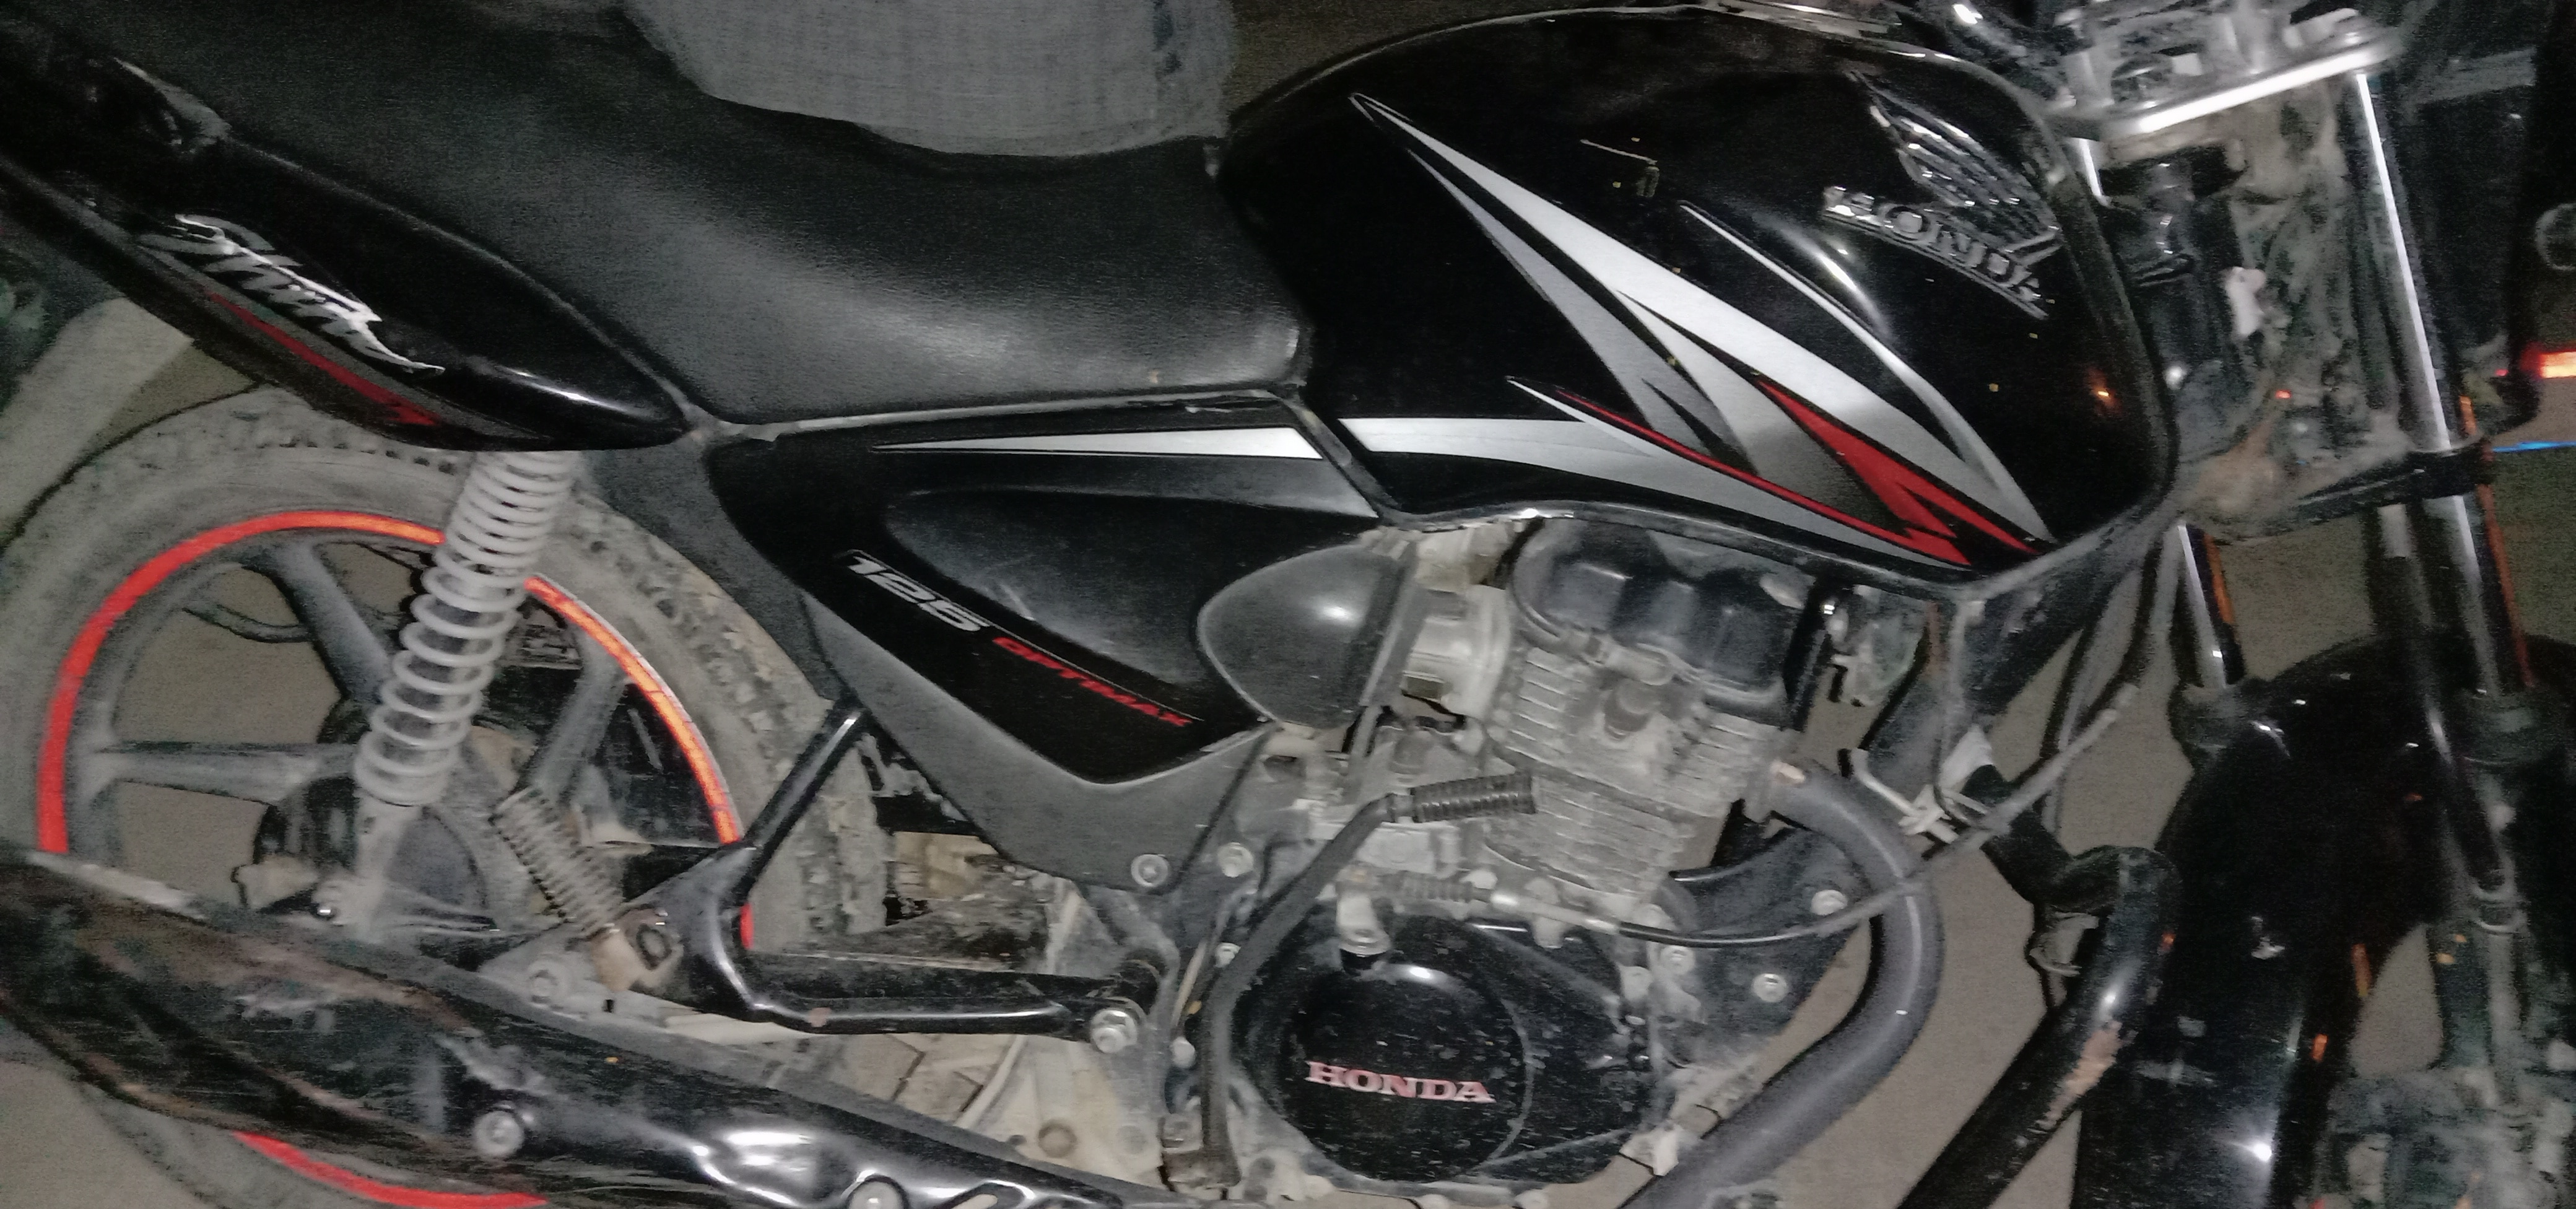 Honda Shine Disc Brake